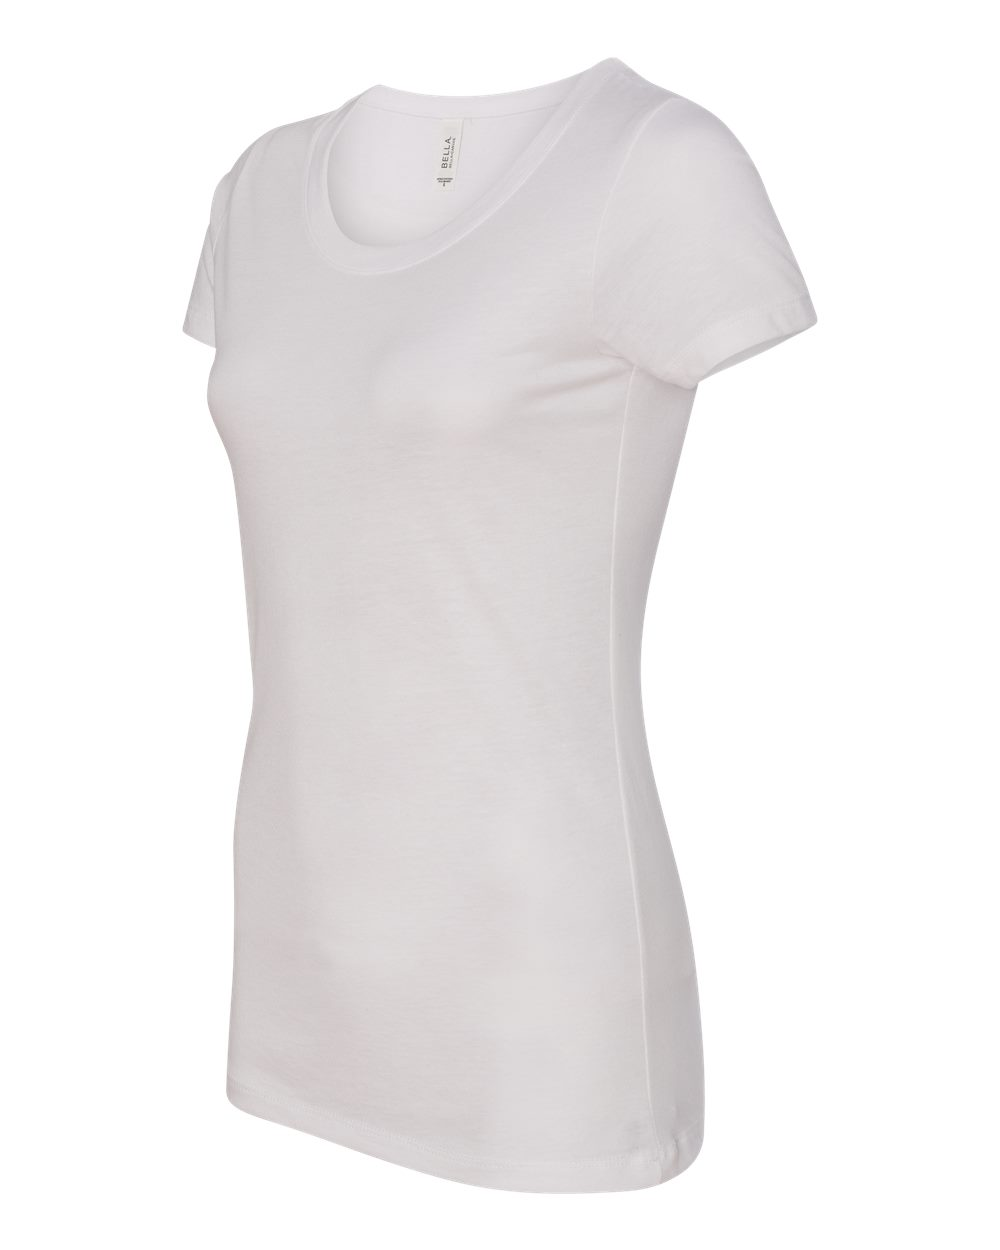 Bella-Canvas-Women-039-s-Triblend-Short-Sleeve-T-Shirt-B8413-S-2XL thumbnail 66